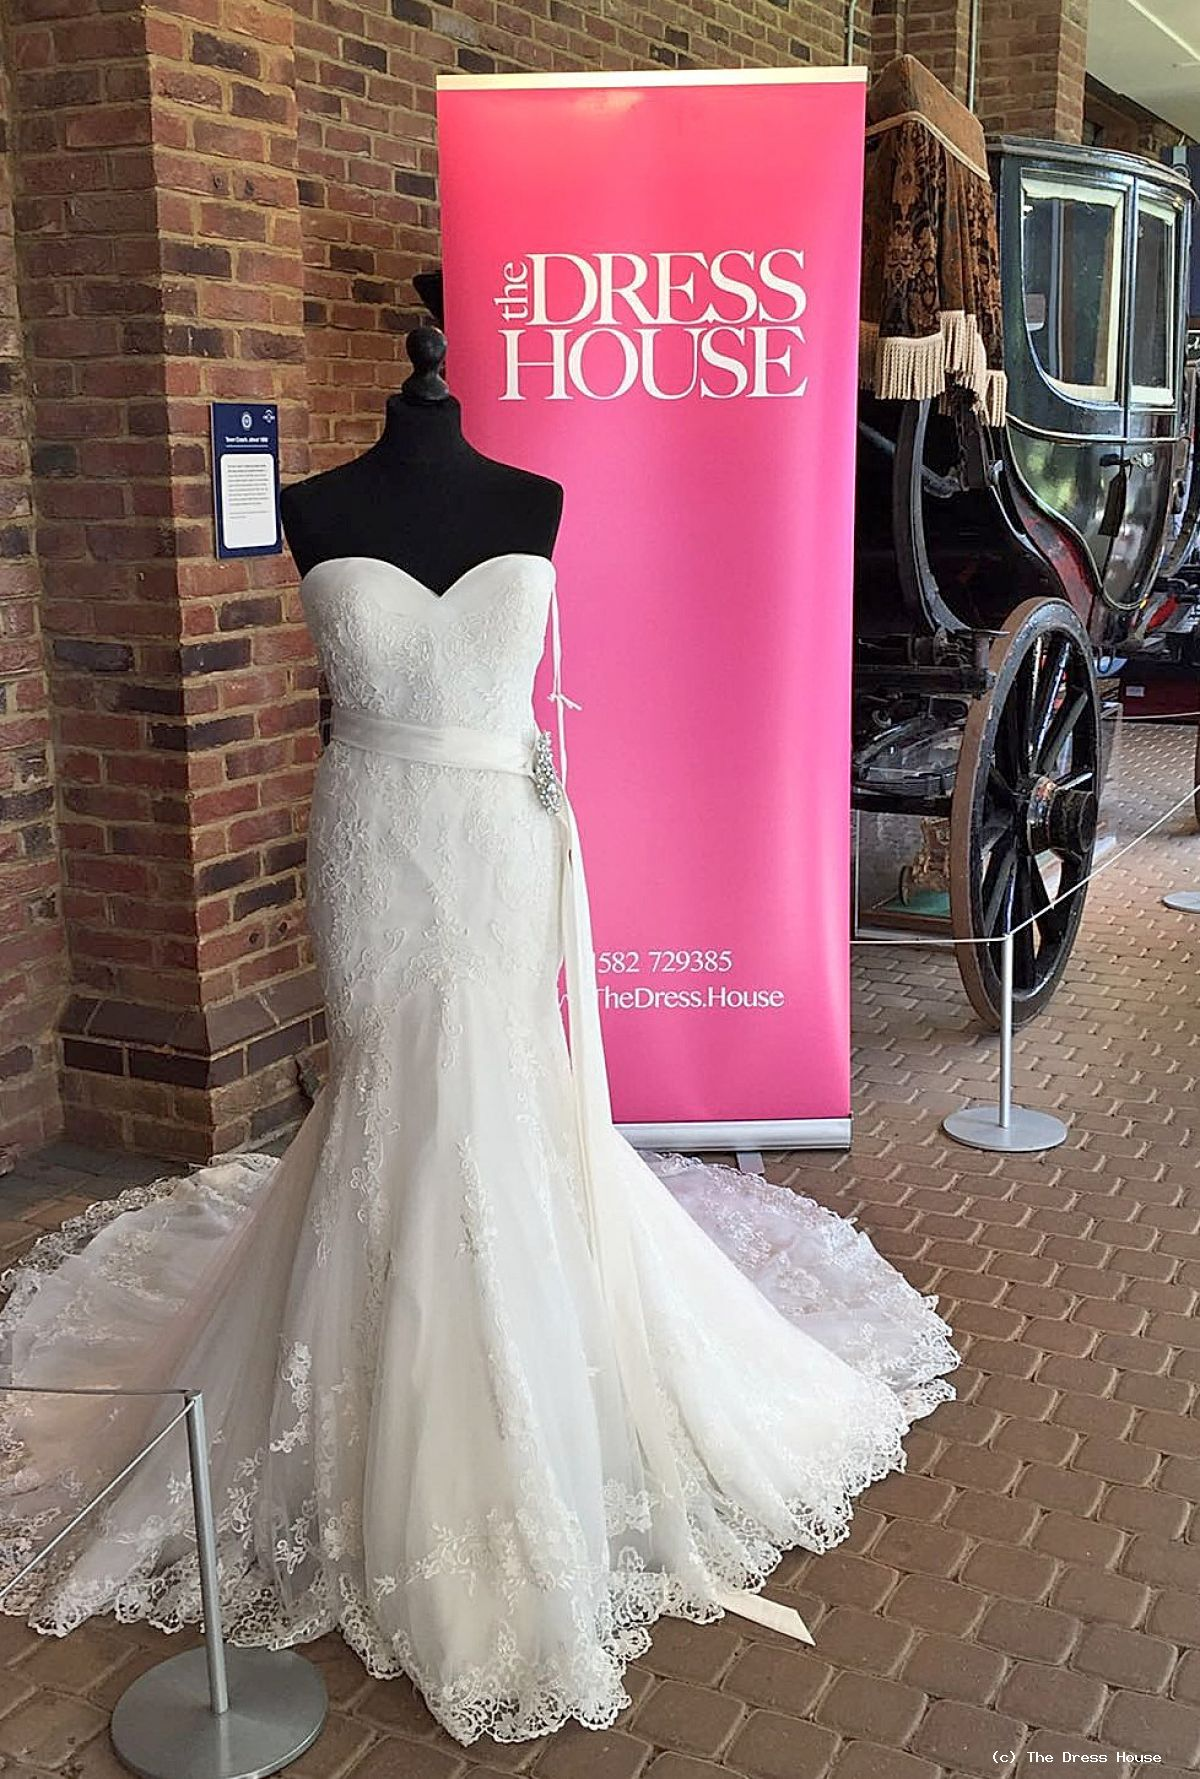 The dress house luton - Busy Day At Stockwood Wedding Fair Luton